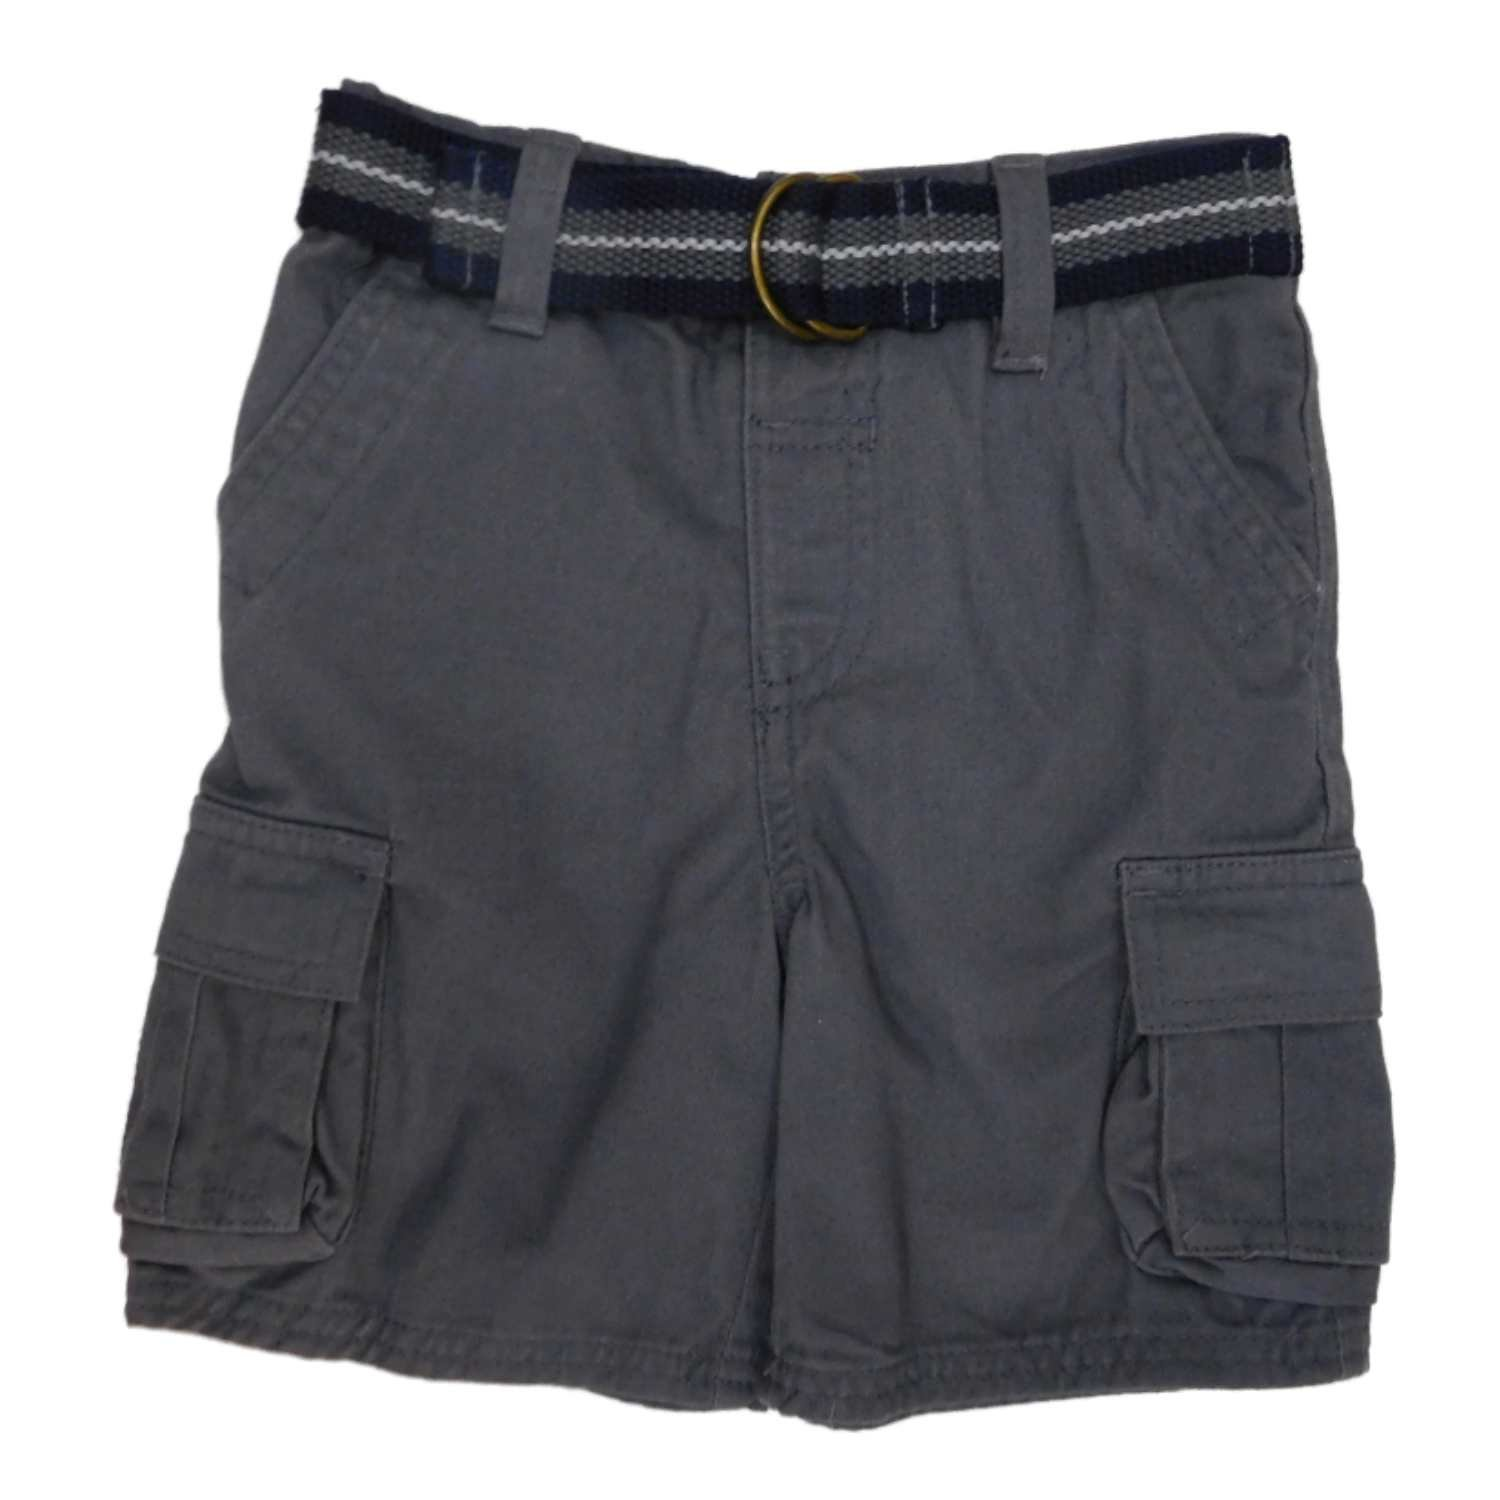 2441932c6 Toughskins Infant   Toddler Boys Gray Cargo Shorts   Belt ...